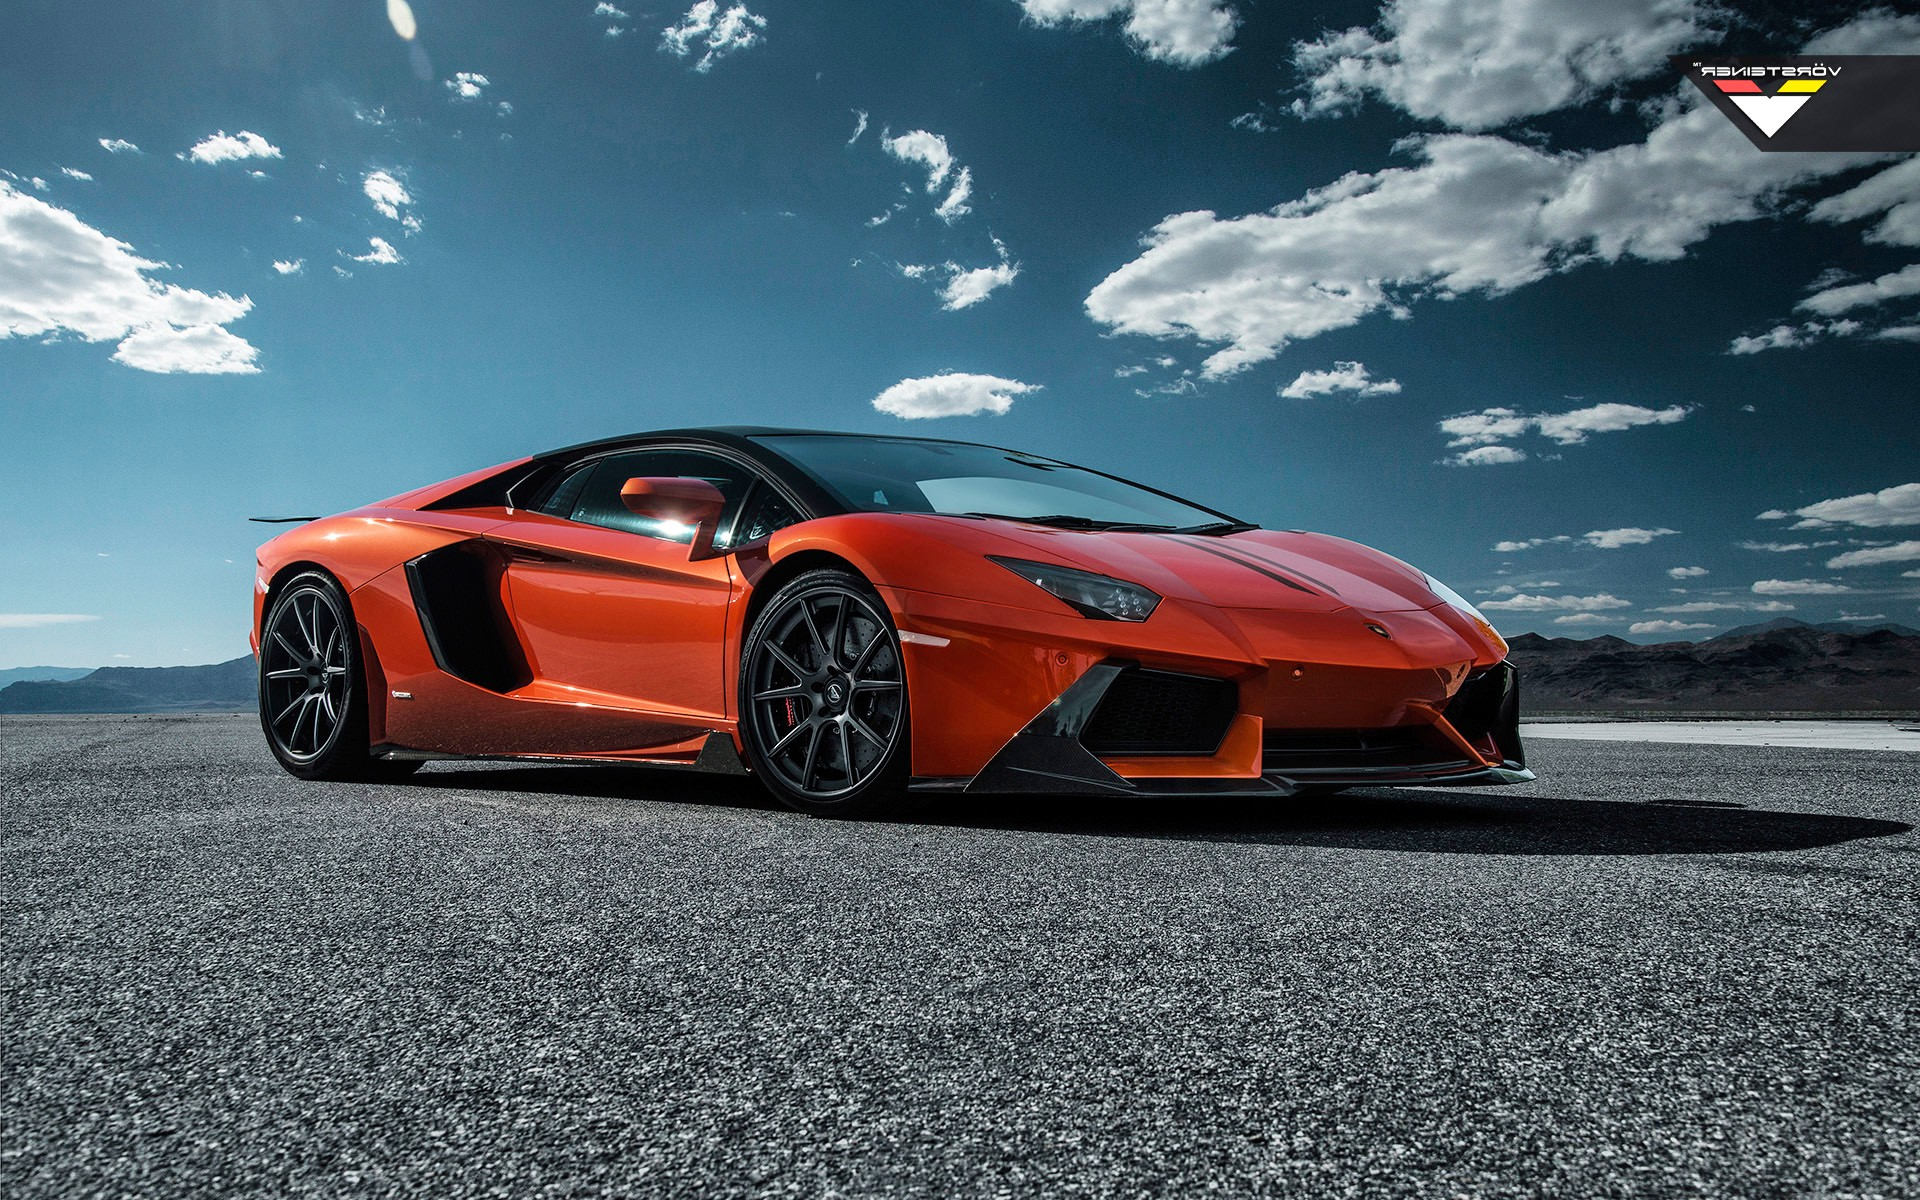 3840x2160 Lamborghini Aventador Zaragoza 4k HD 4k Wallpapers, Images, Backgrounds, Photos and